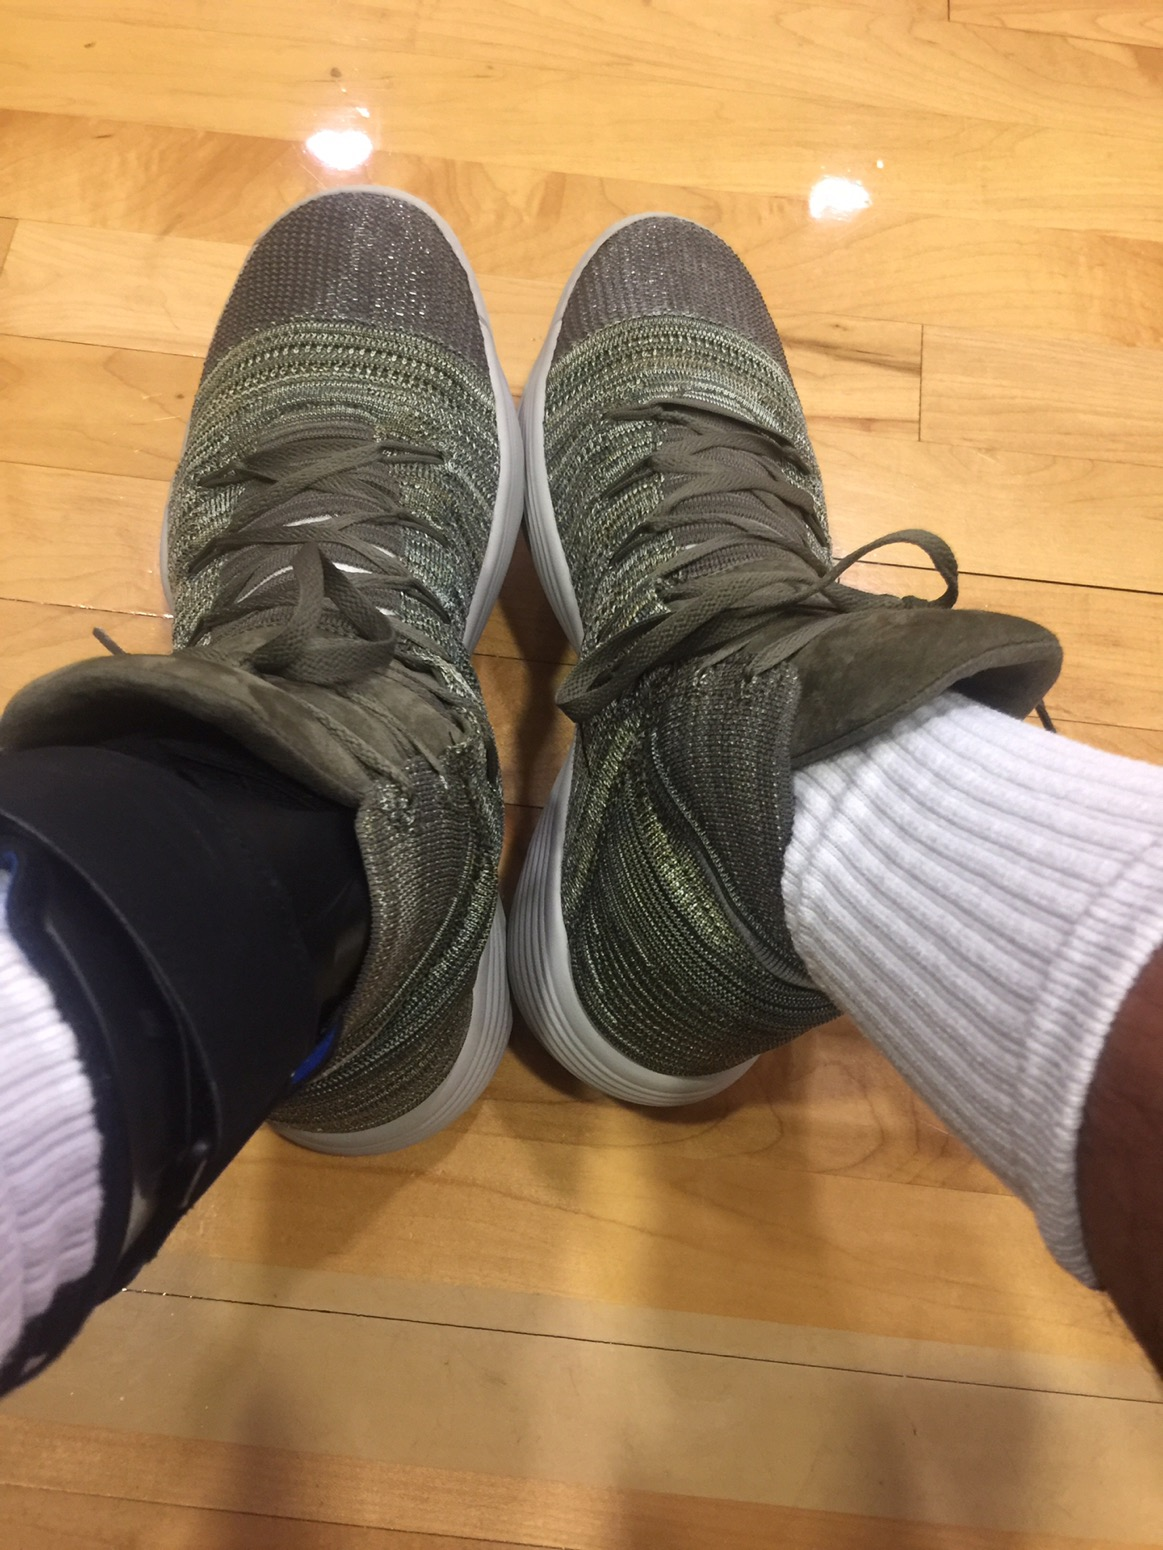 386bca56bf00 Although camo isn t my color I couldn t wait to get these on court. I got  these last night from UPS and hit the court for some quick